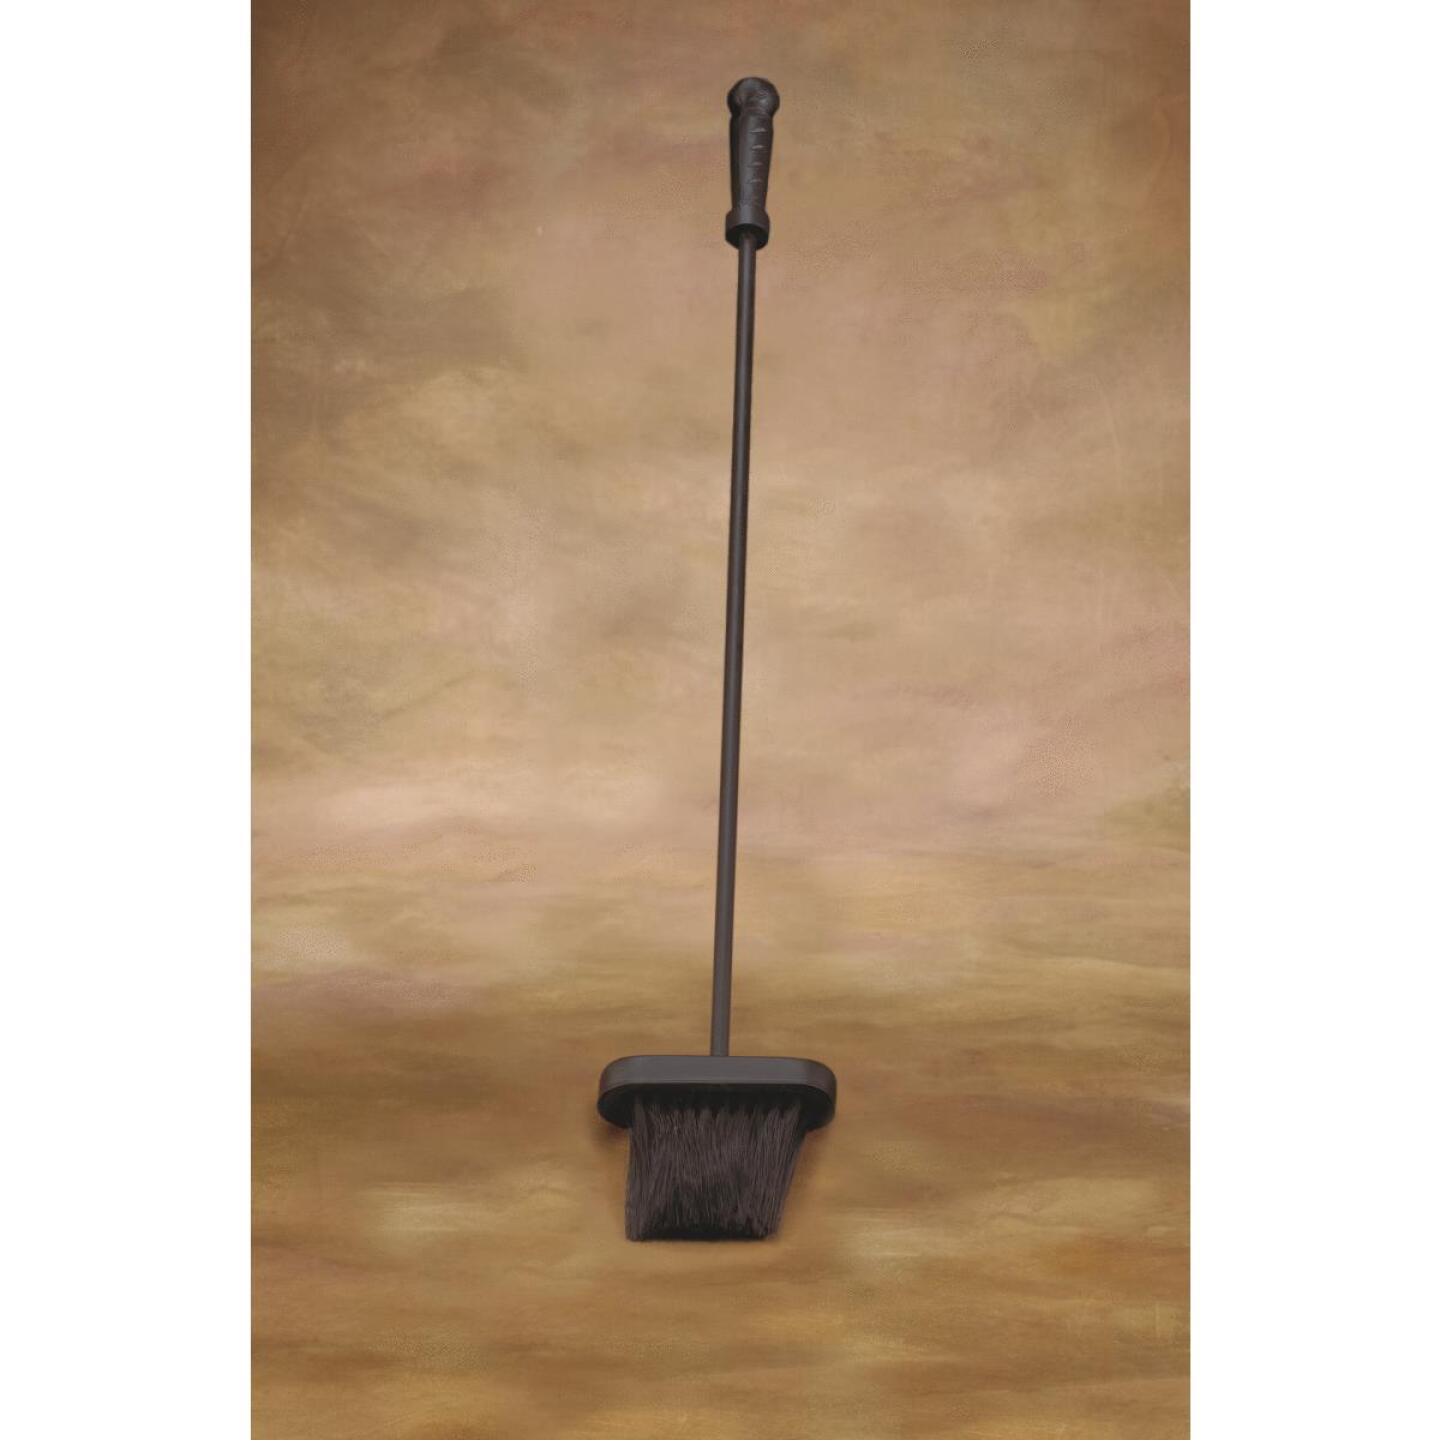 Home Impressions Early American Cast-Iron Nylon Fireplace Brush Image 3